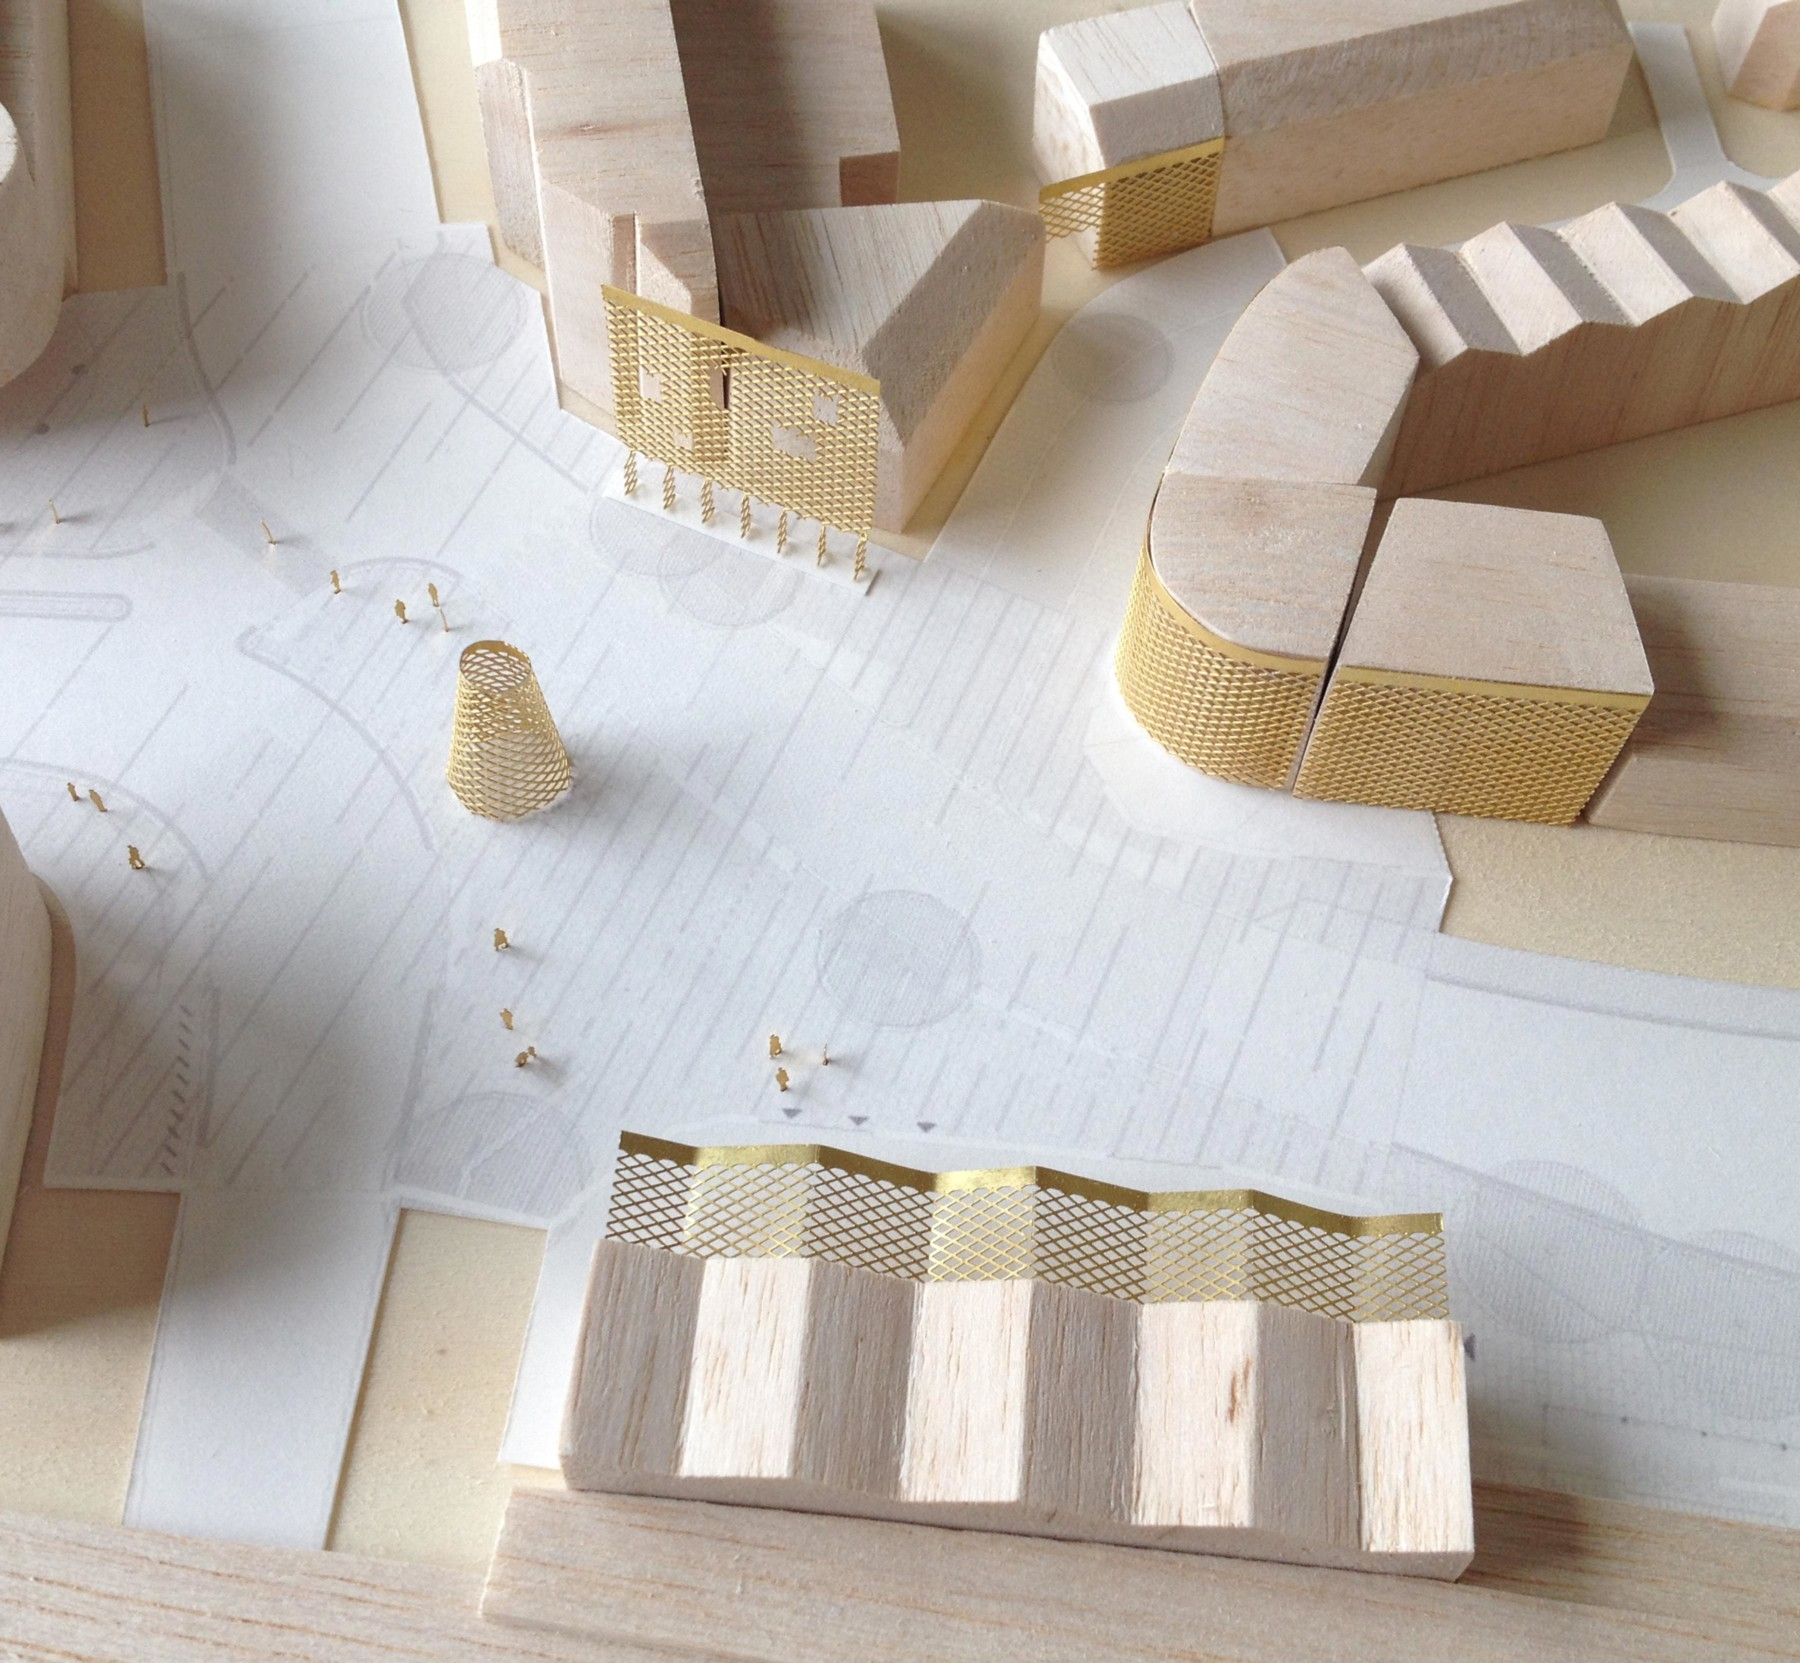 Sarah-Wigglesworth-Architects Kingston-Mini-Holland Context Model 3600